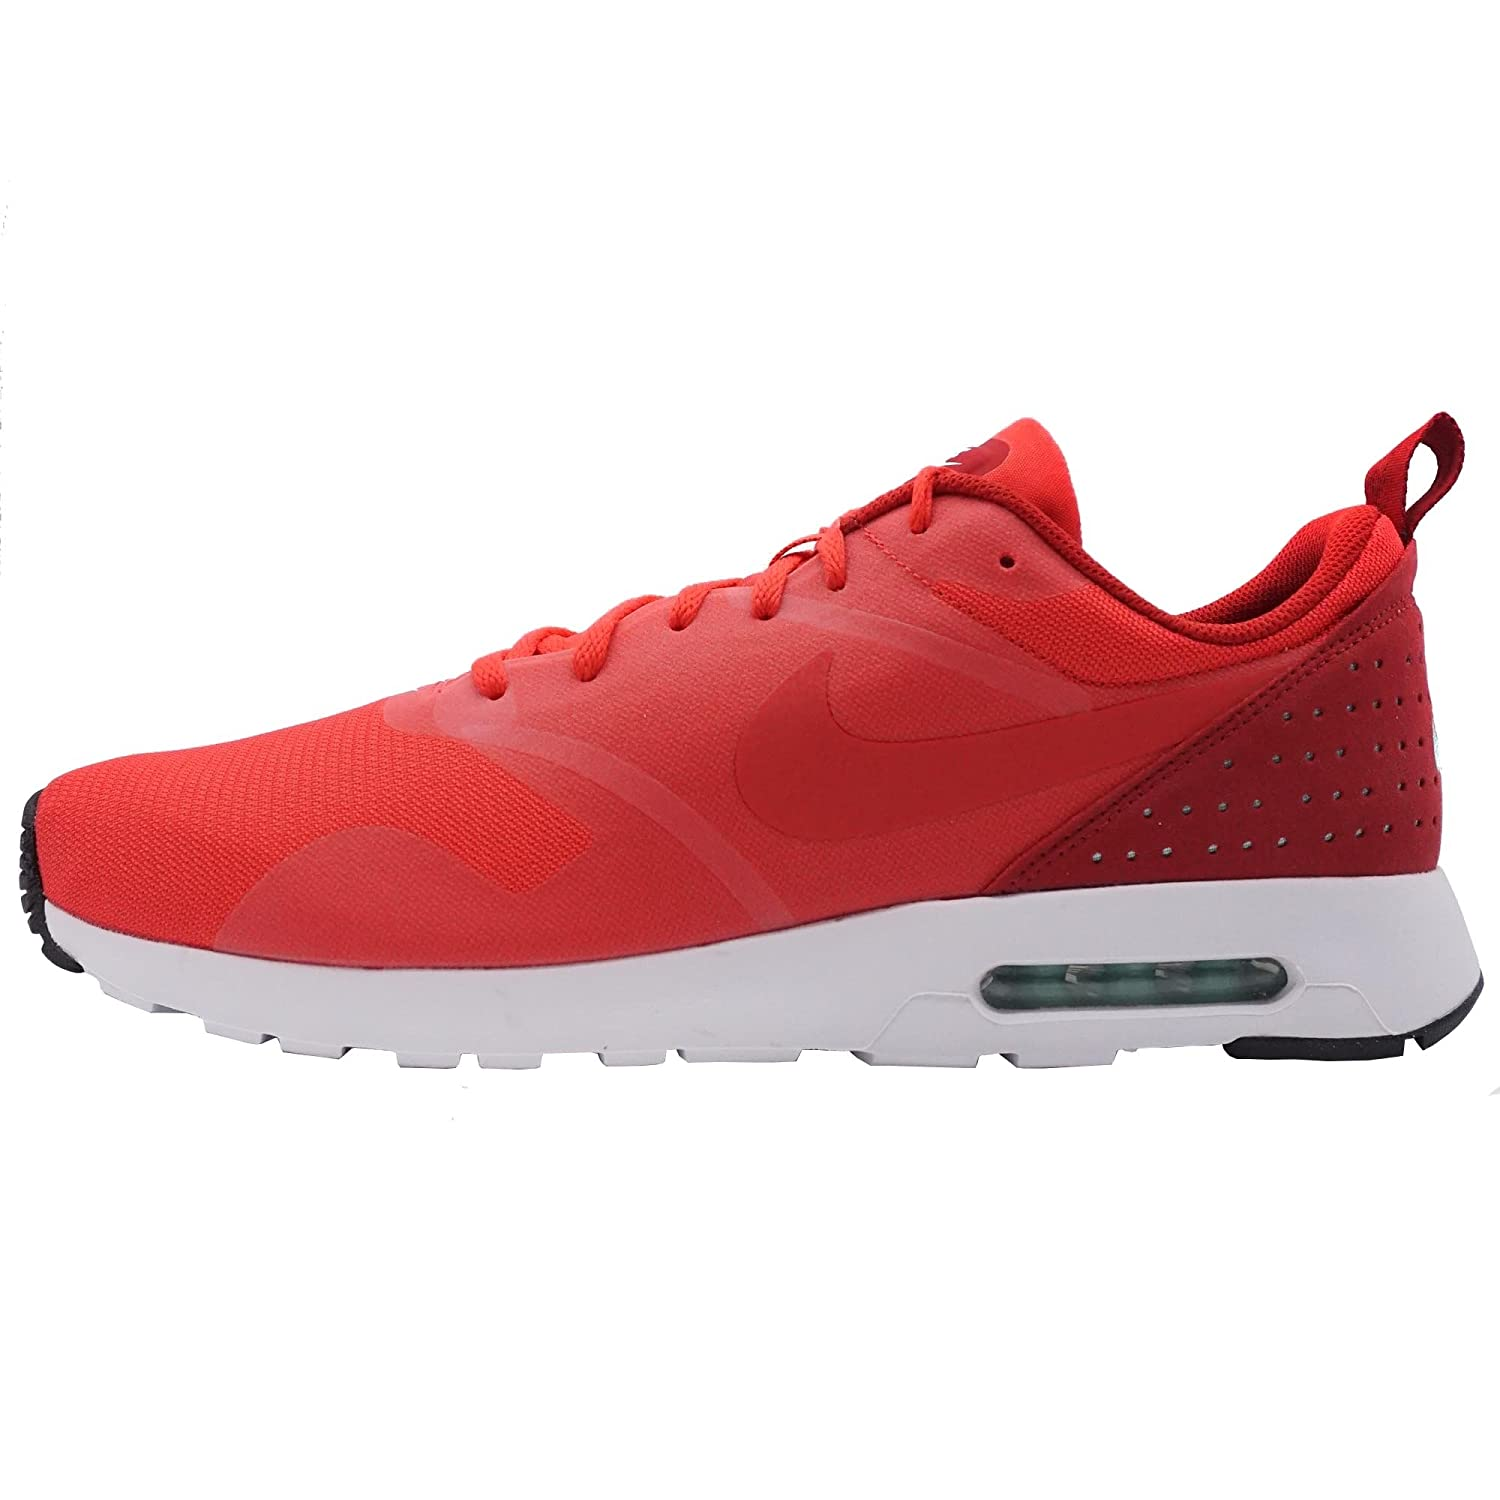 Nike Herren Air Max Tavas Laufschuhe  39 EU|Rojo (Action Red/Action Red-gym Red-white)